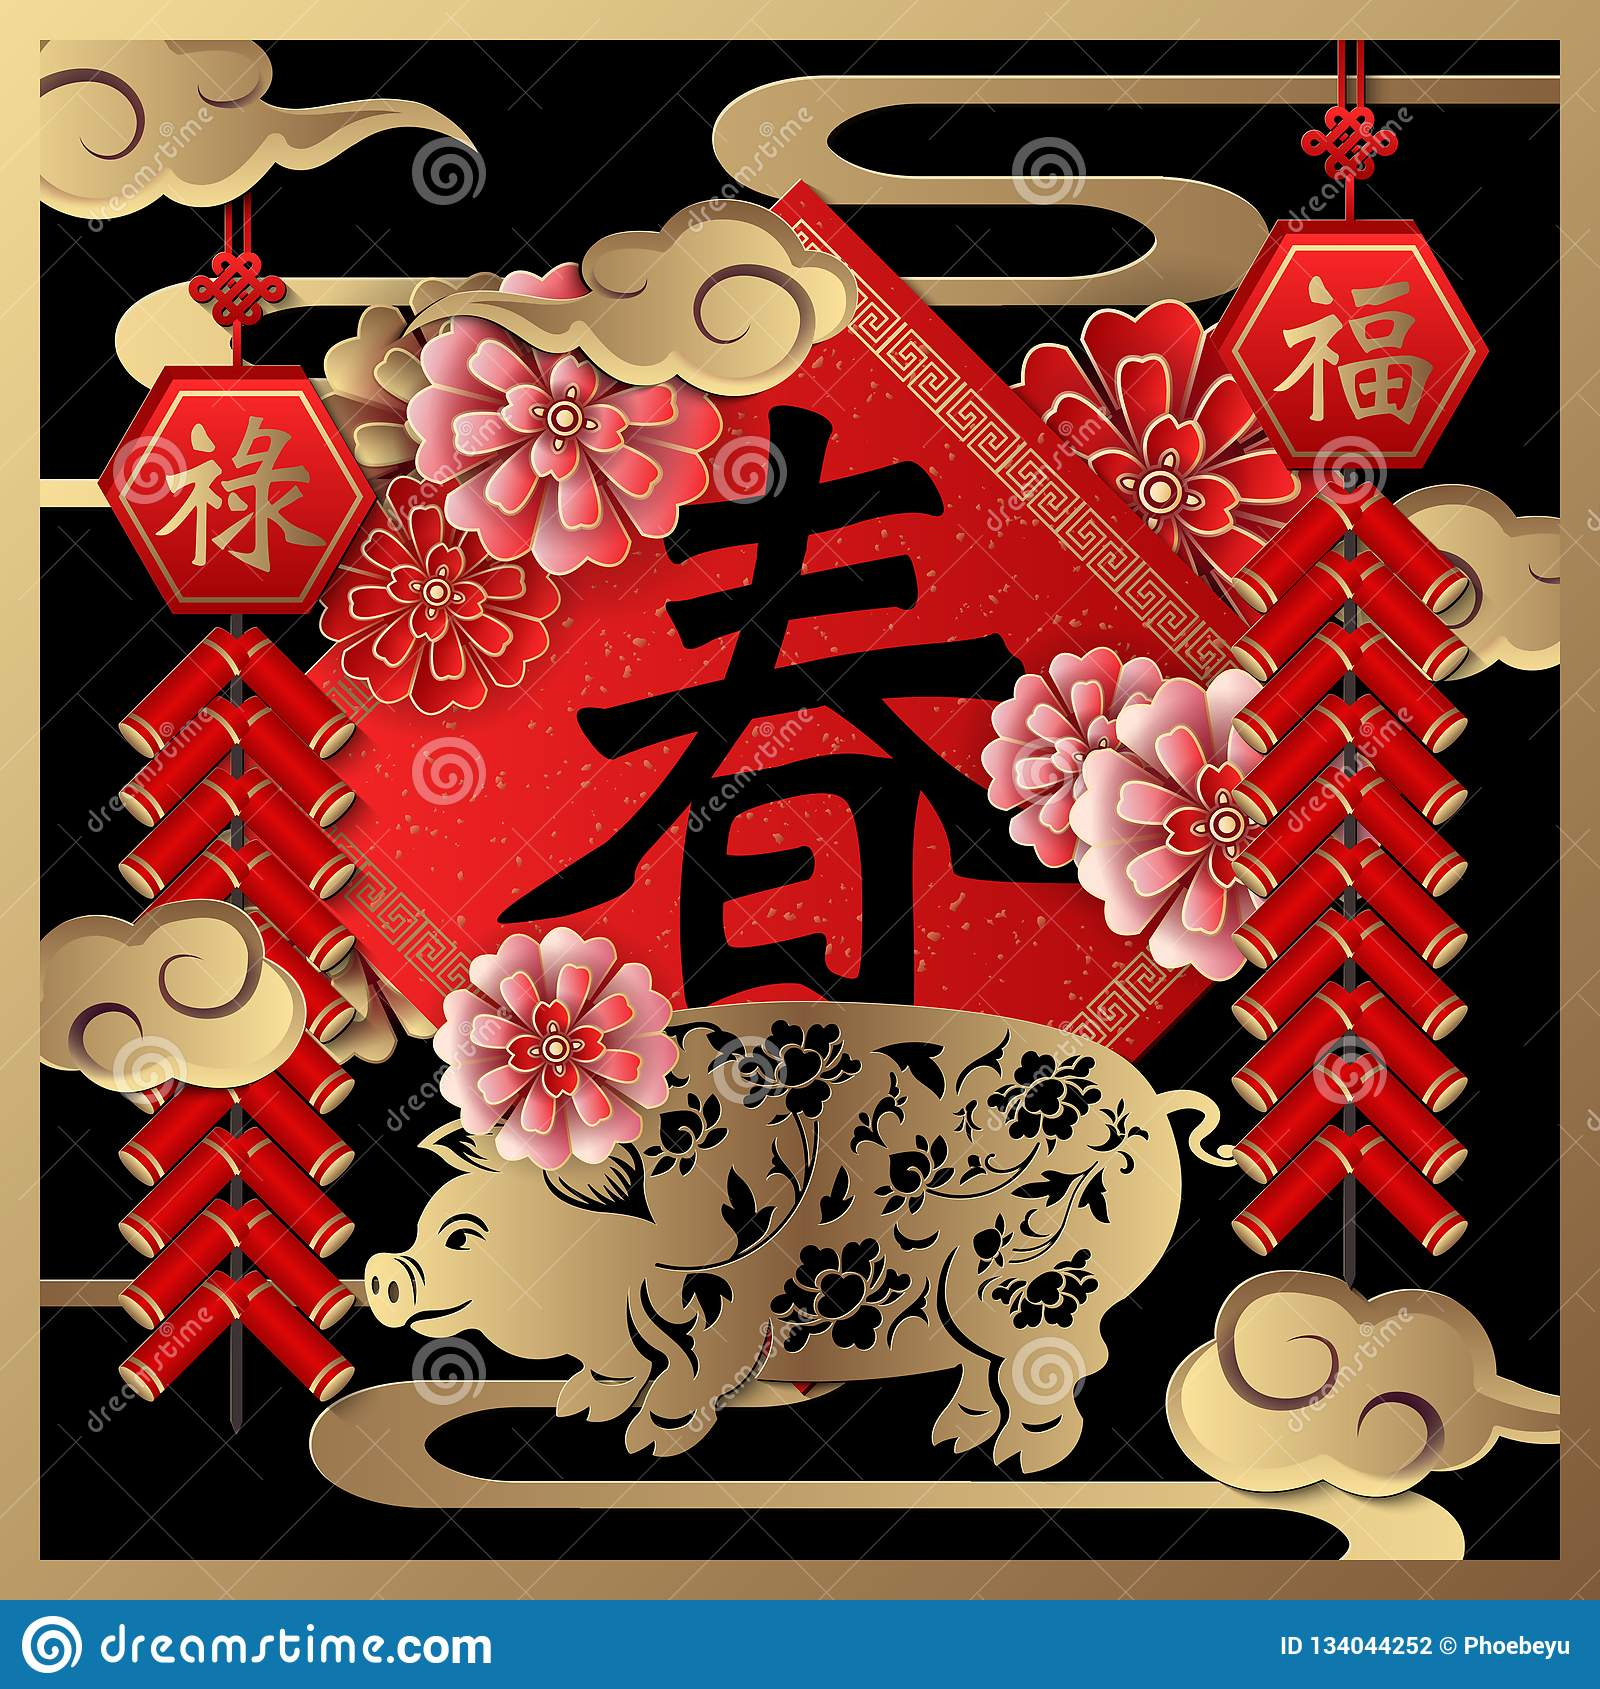 Happy Chinese new year retro gold relief pig flower firecrackers cloud and spring couplet